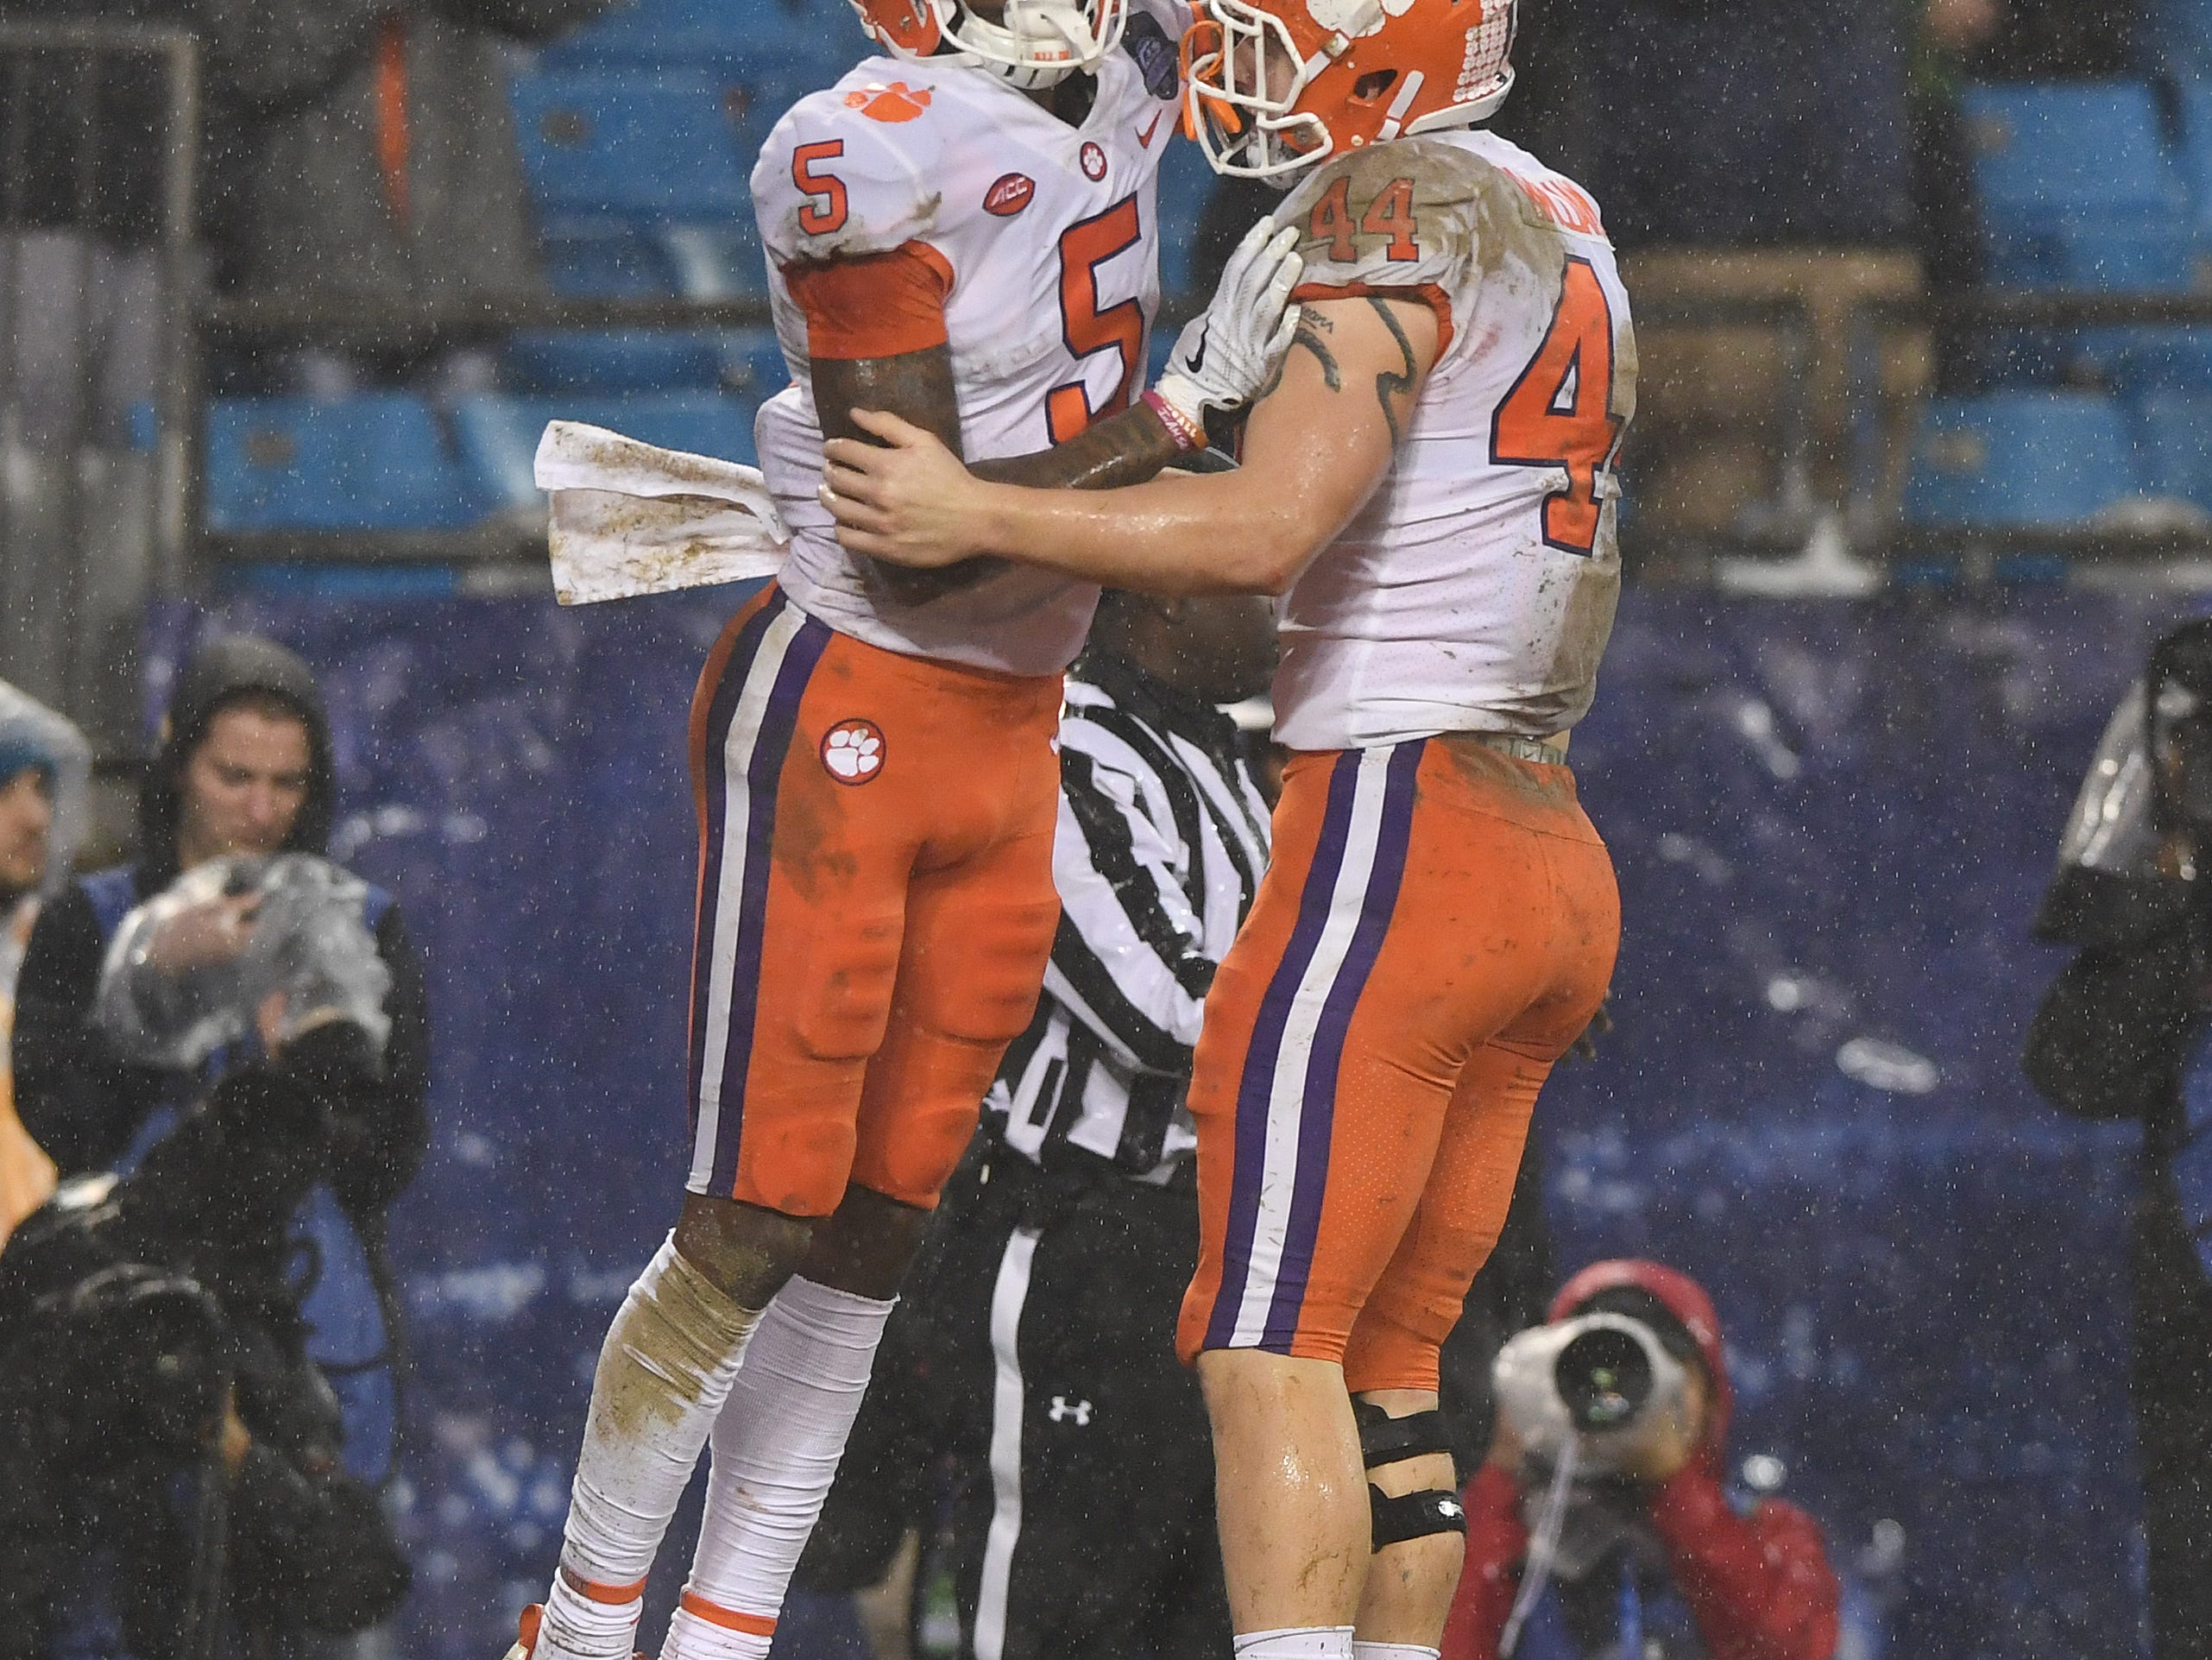 Clemson wide receiver Tee Higgins (5) celebrates with tight end Garrett Williams (44) after catching a TD against Pittsburgh during the 2nd quarter of the Dr. Pepper ACC Championship at Bank of America Stadium in Charlotte, N.C. Saturday, December 1, 2018.